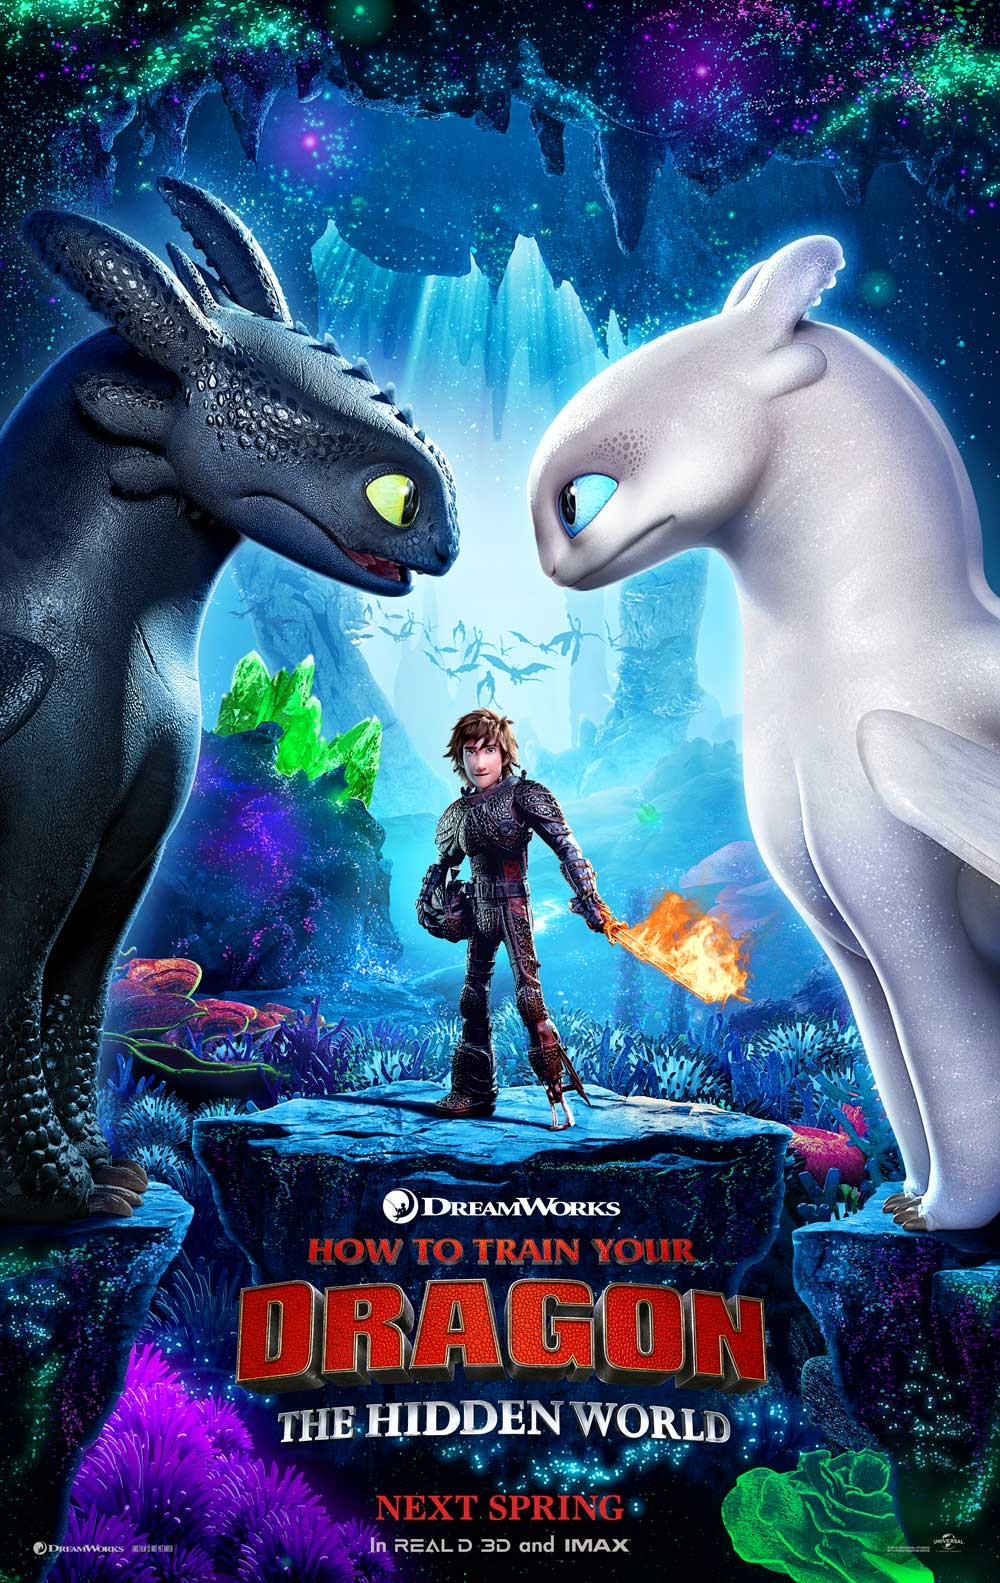 How to Train Your Dragon: The Hidden World offical poster